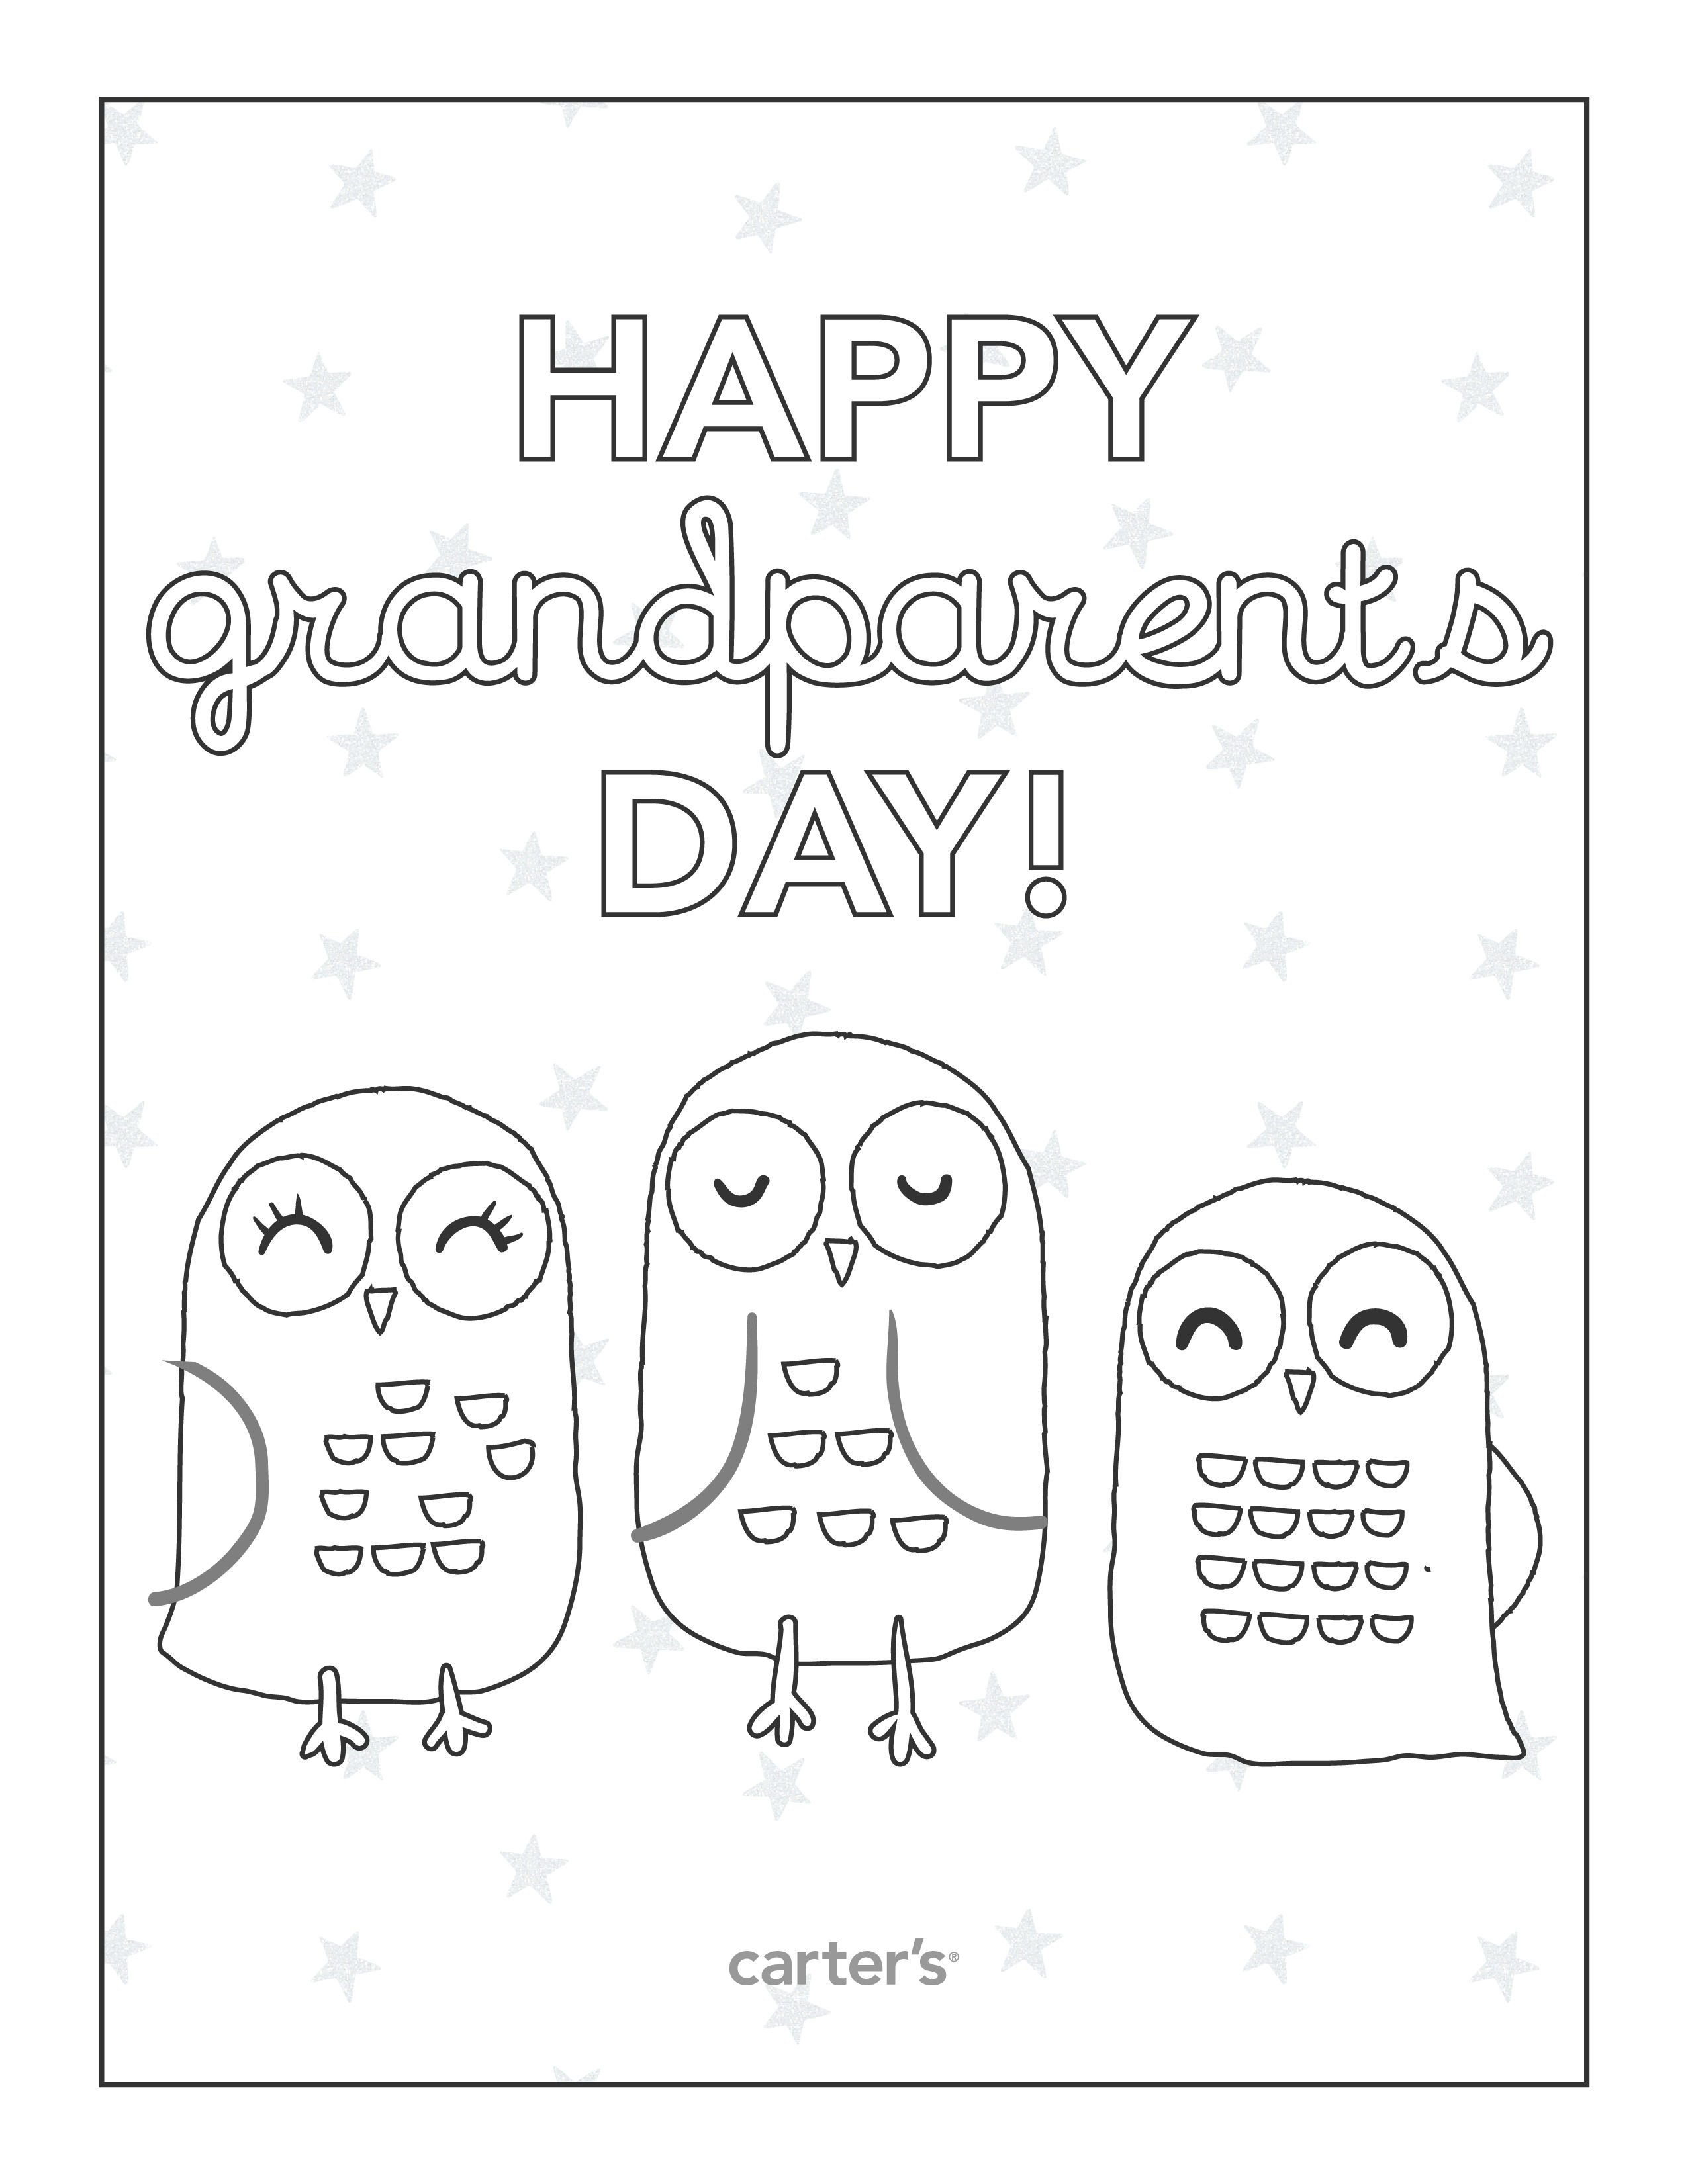 Free Printable Grandparents Day Coloring Pages From Carter